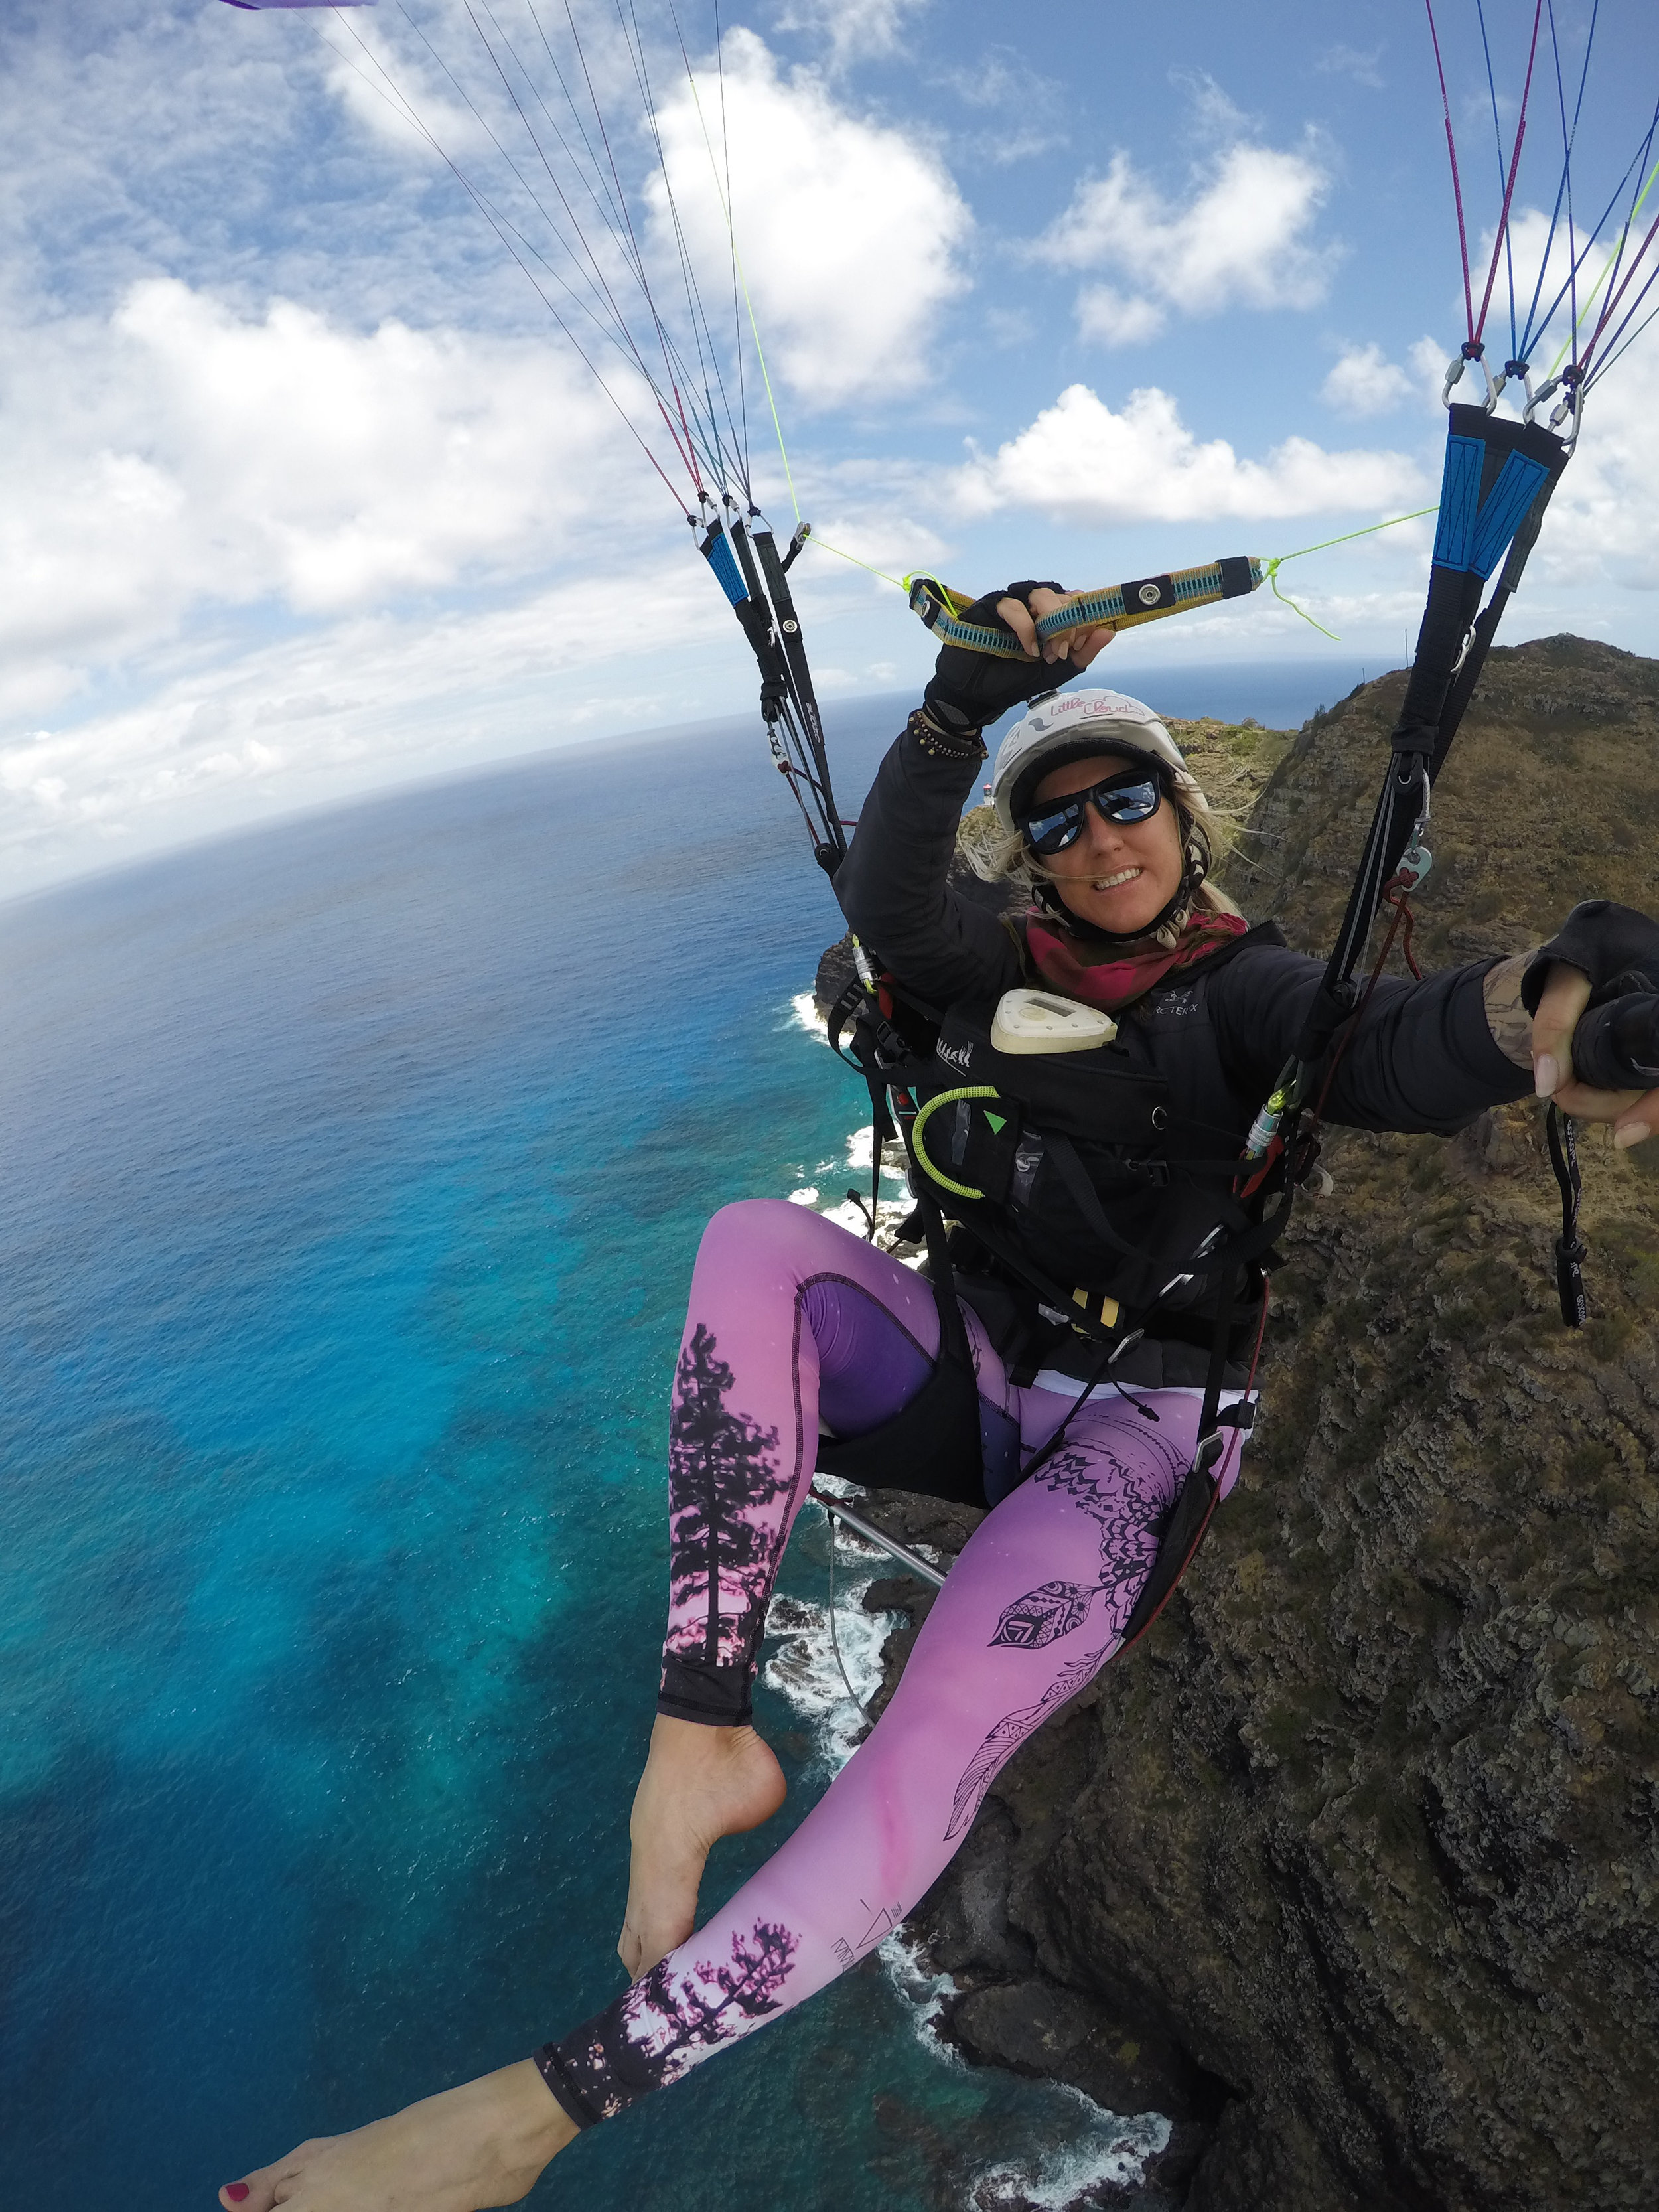 Paragliding above the torquoise waters of Makapu'u Point in Hawaii